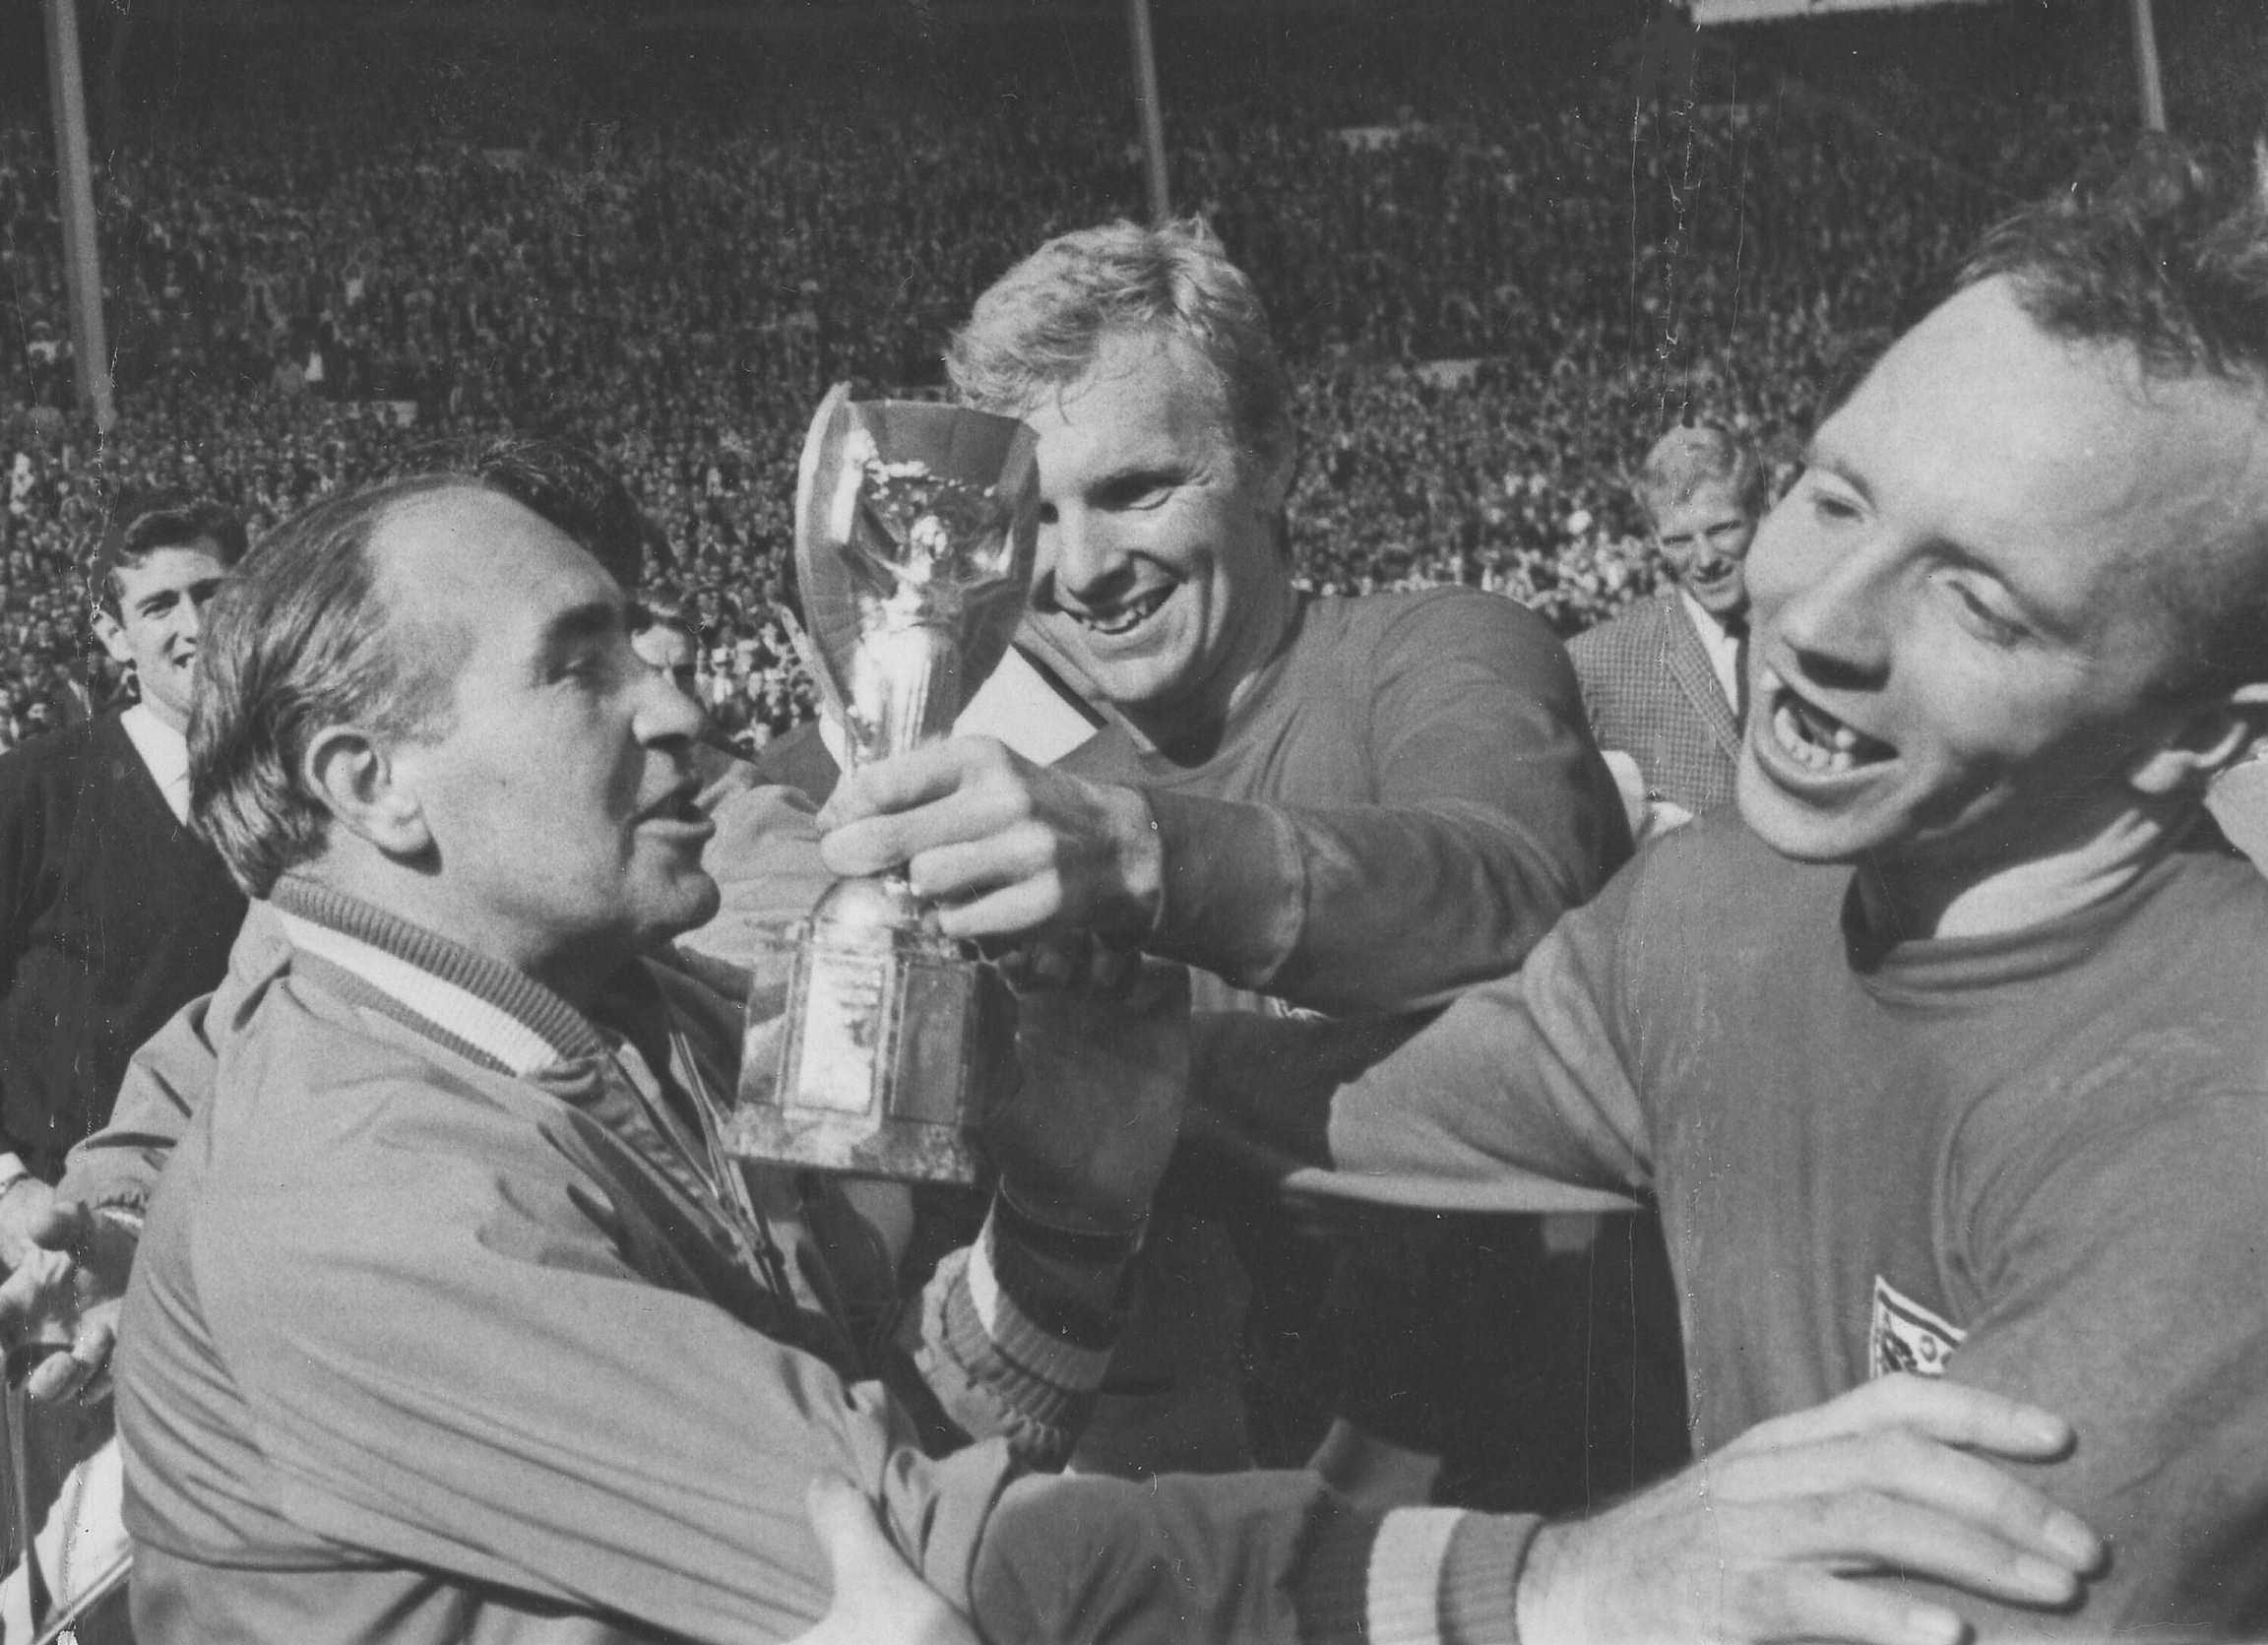 In this July 30, 1966 file photo, England midfield player Nobby Stiles, right, looks at the Jules Rimet Cup, held by England captain Bobby Moore after they had won the World Cup Final at Wembley, London.